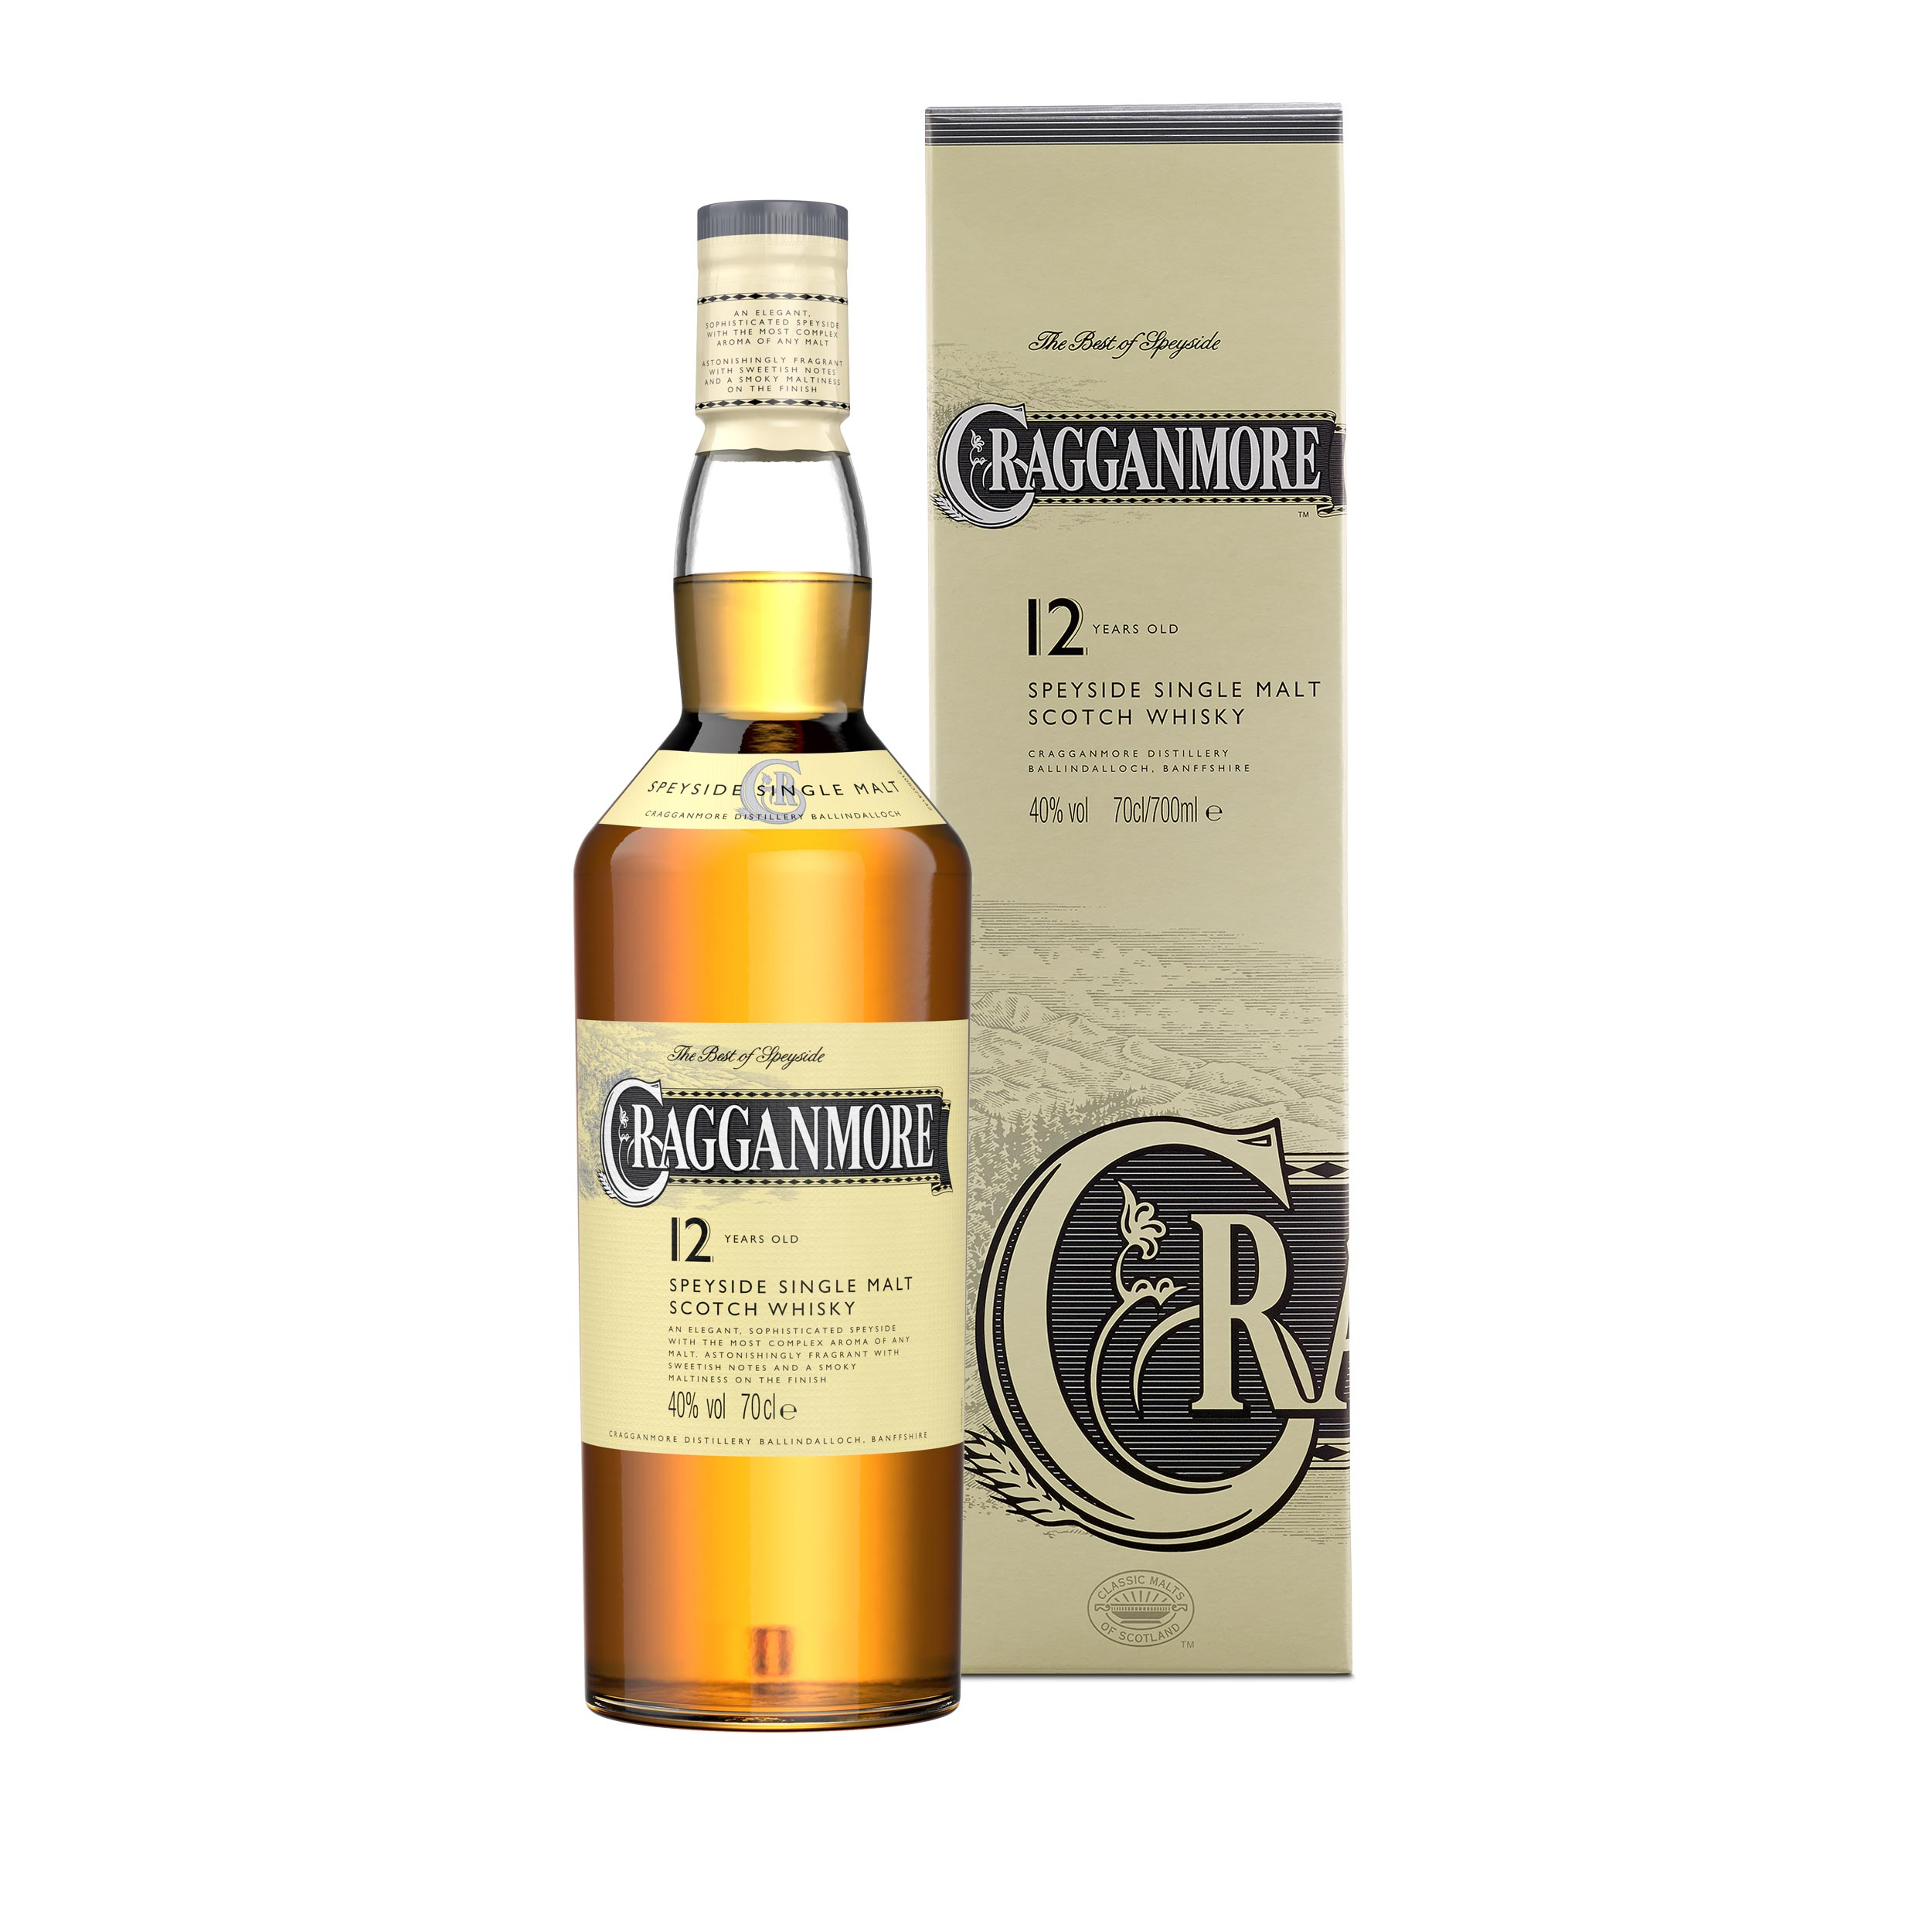 Cragganmore 12 Year Old Speyside Single Malt Scotch Whisky 70cl